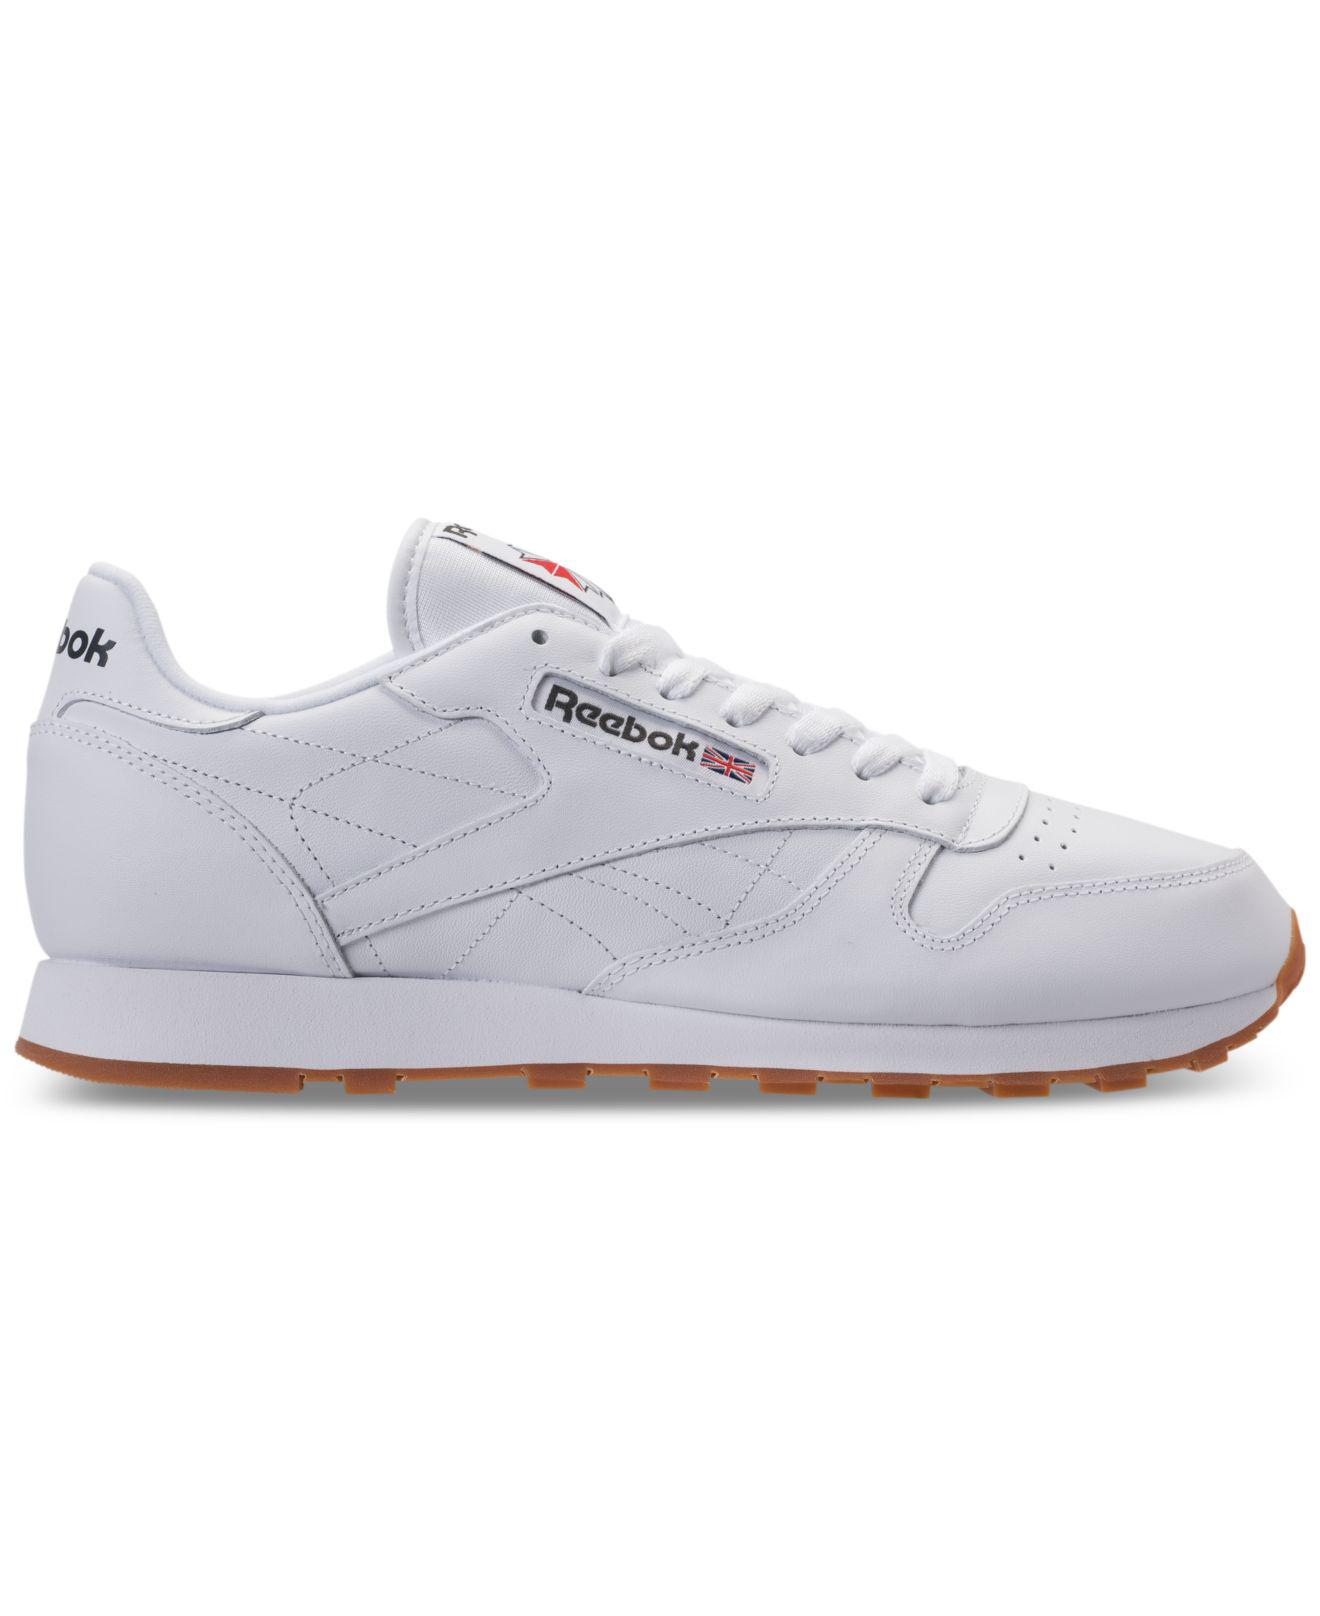 ef8f45d47f57 Lyst - Reebok Men s Classic Leather Casual Sneakers From Finish Line in  White for Men